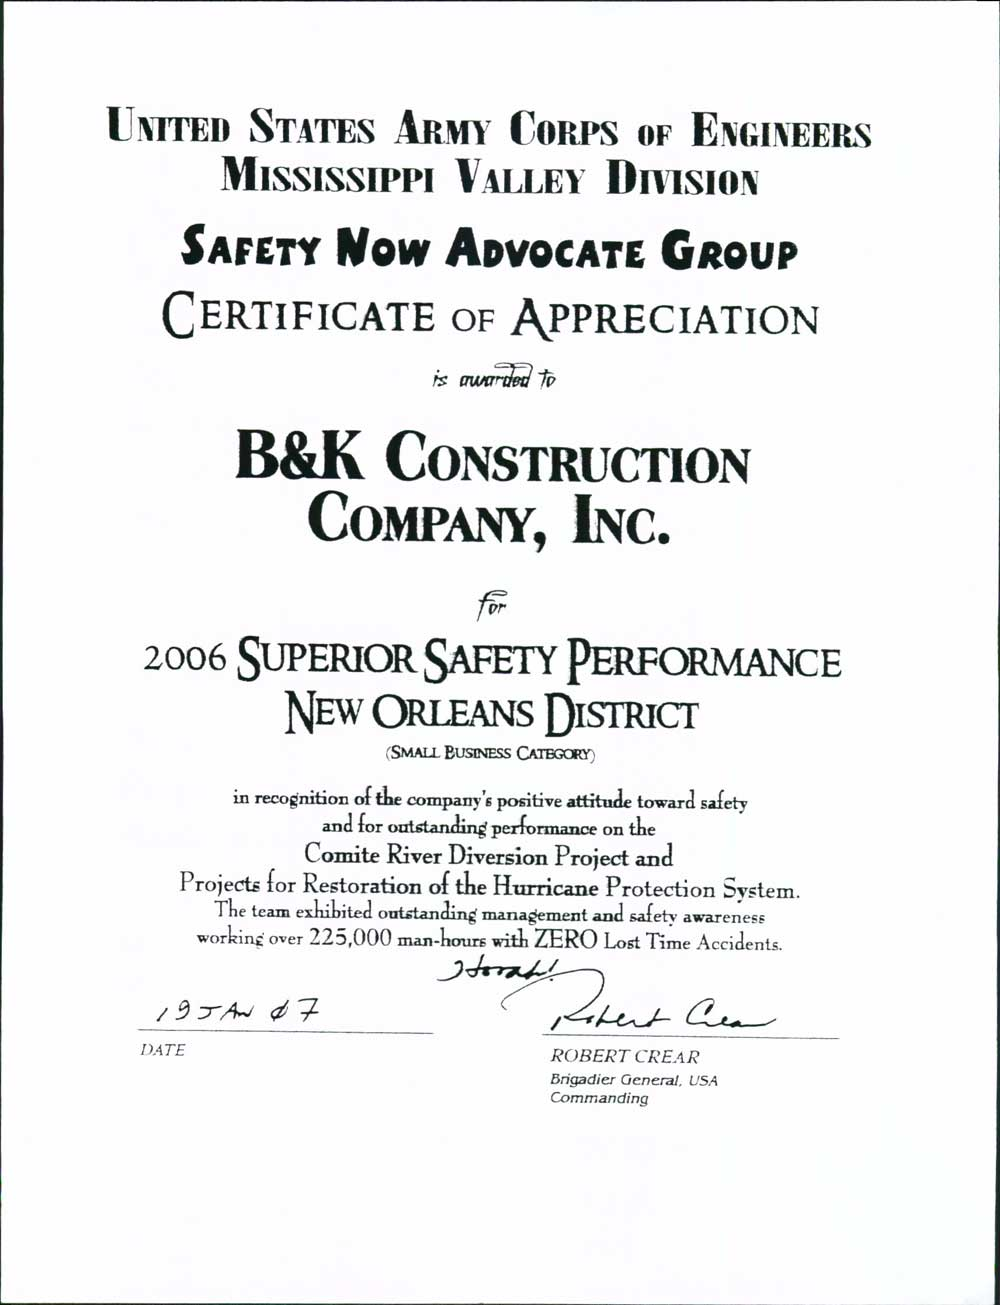 safetyaward3.jpg